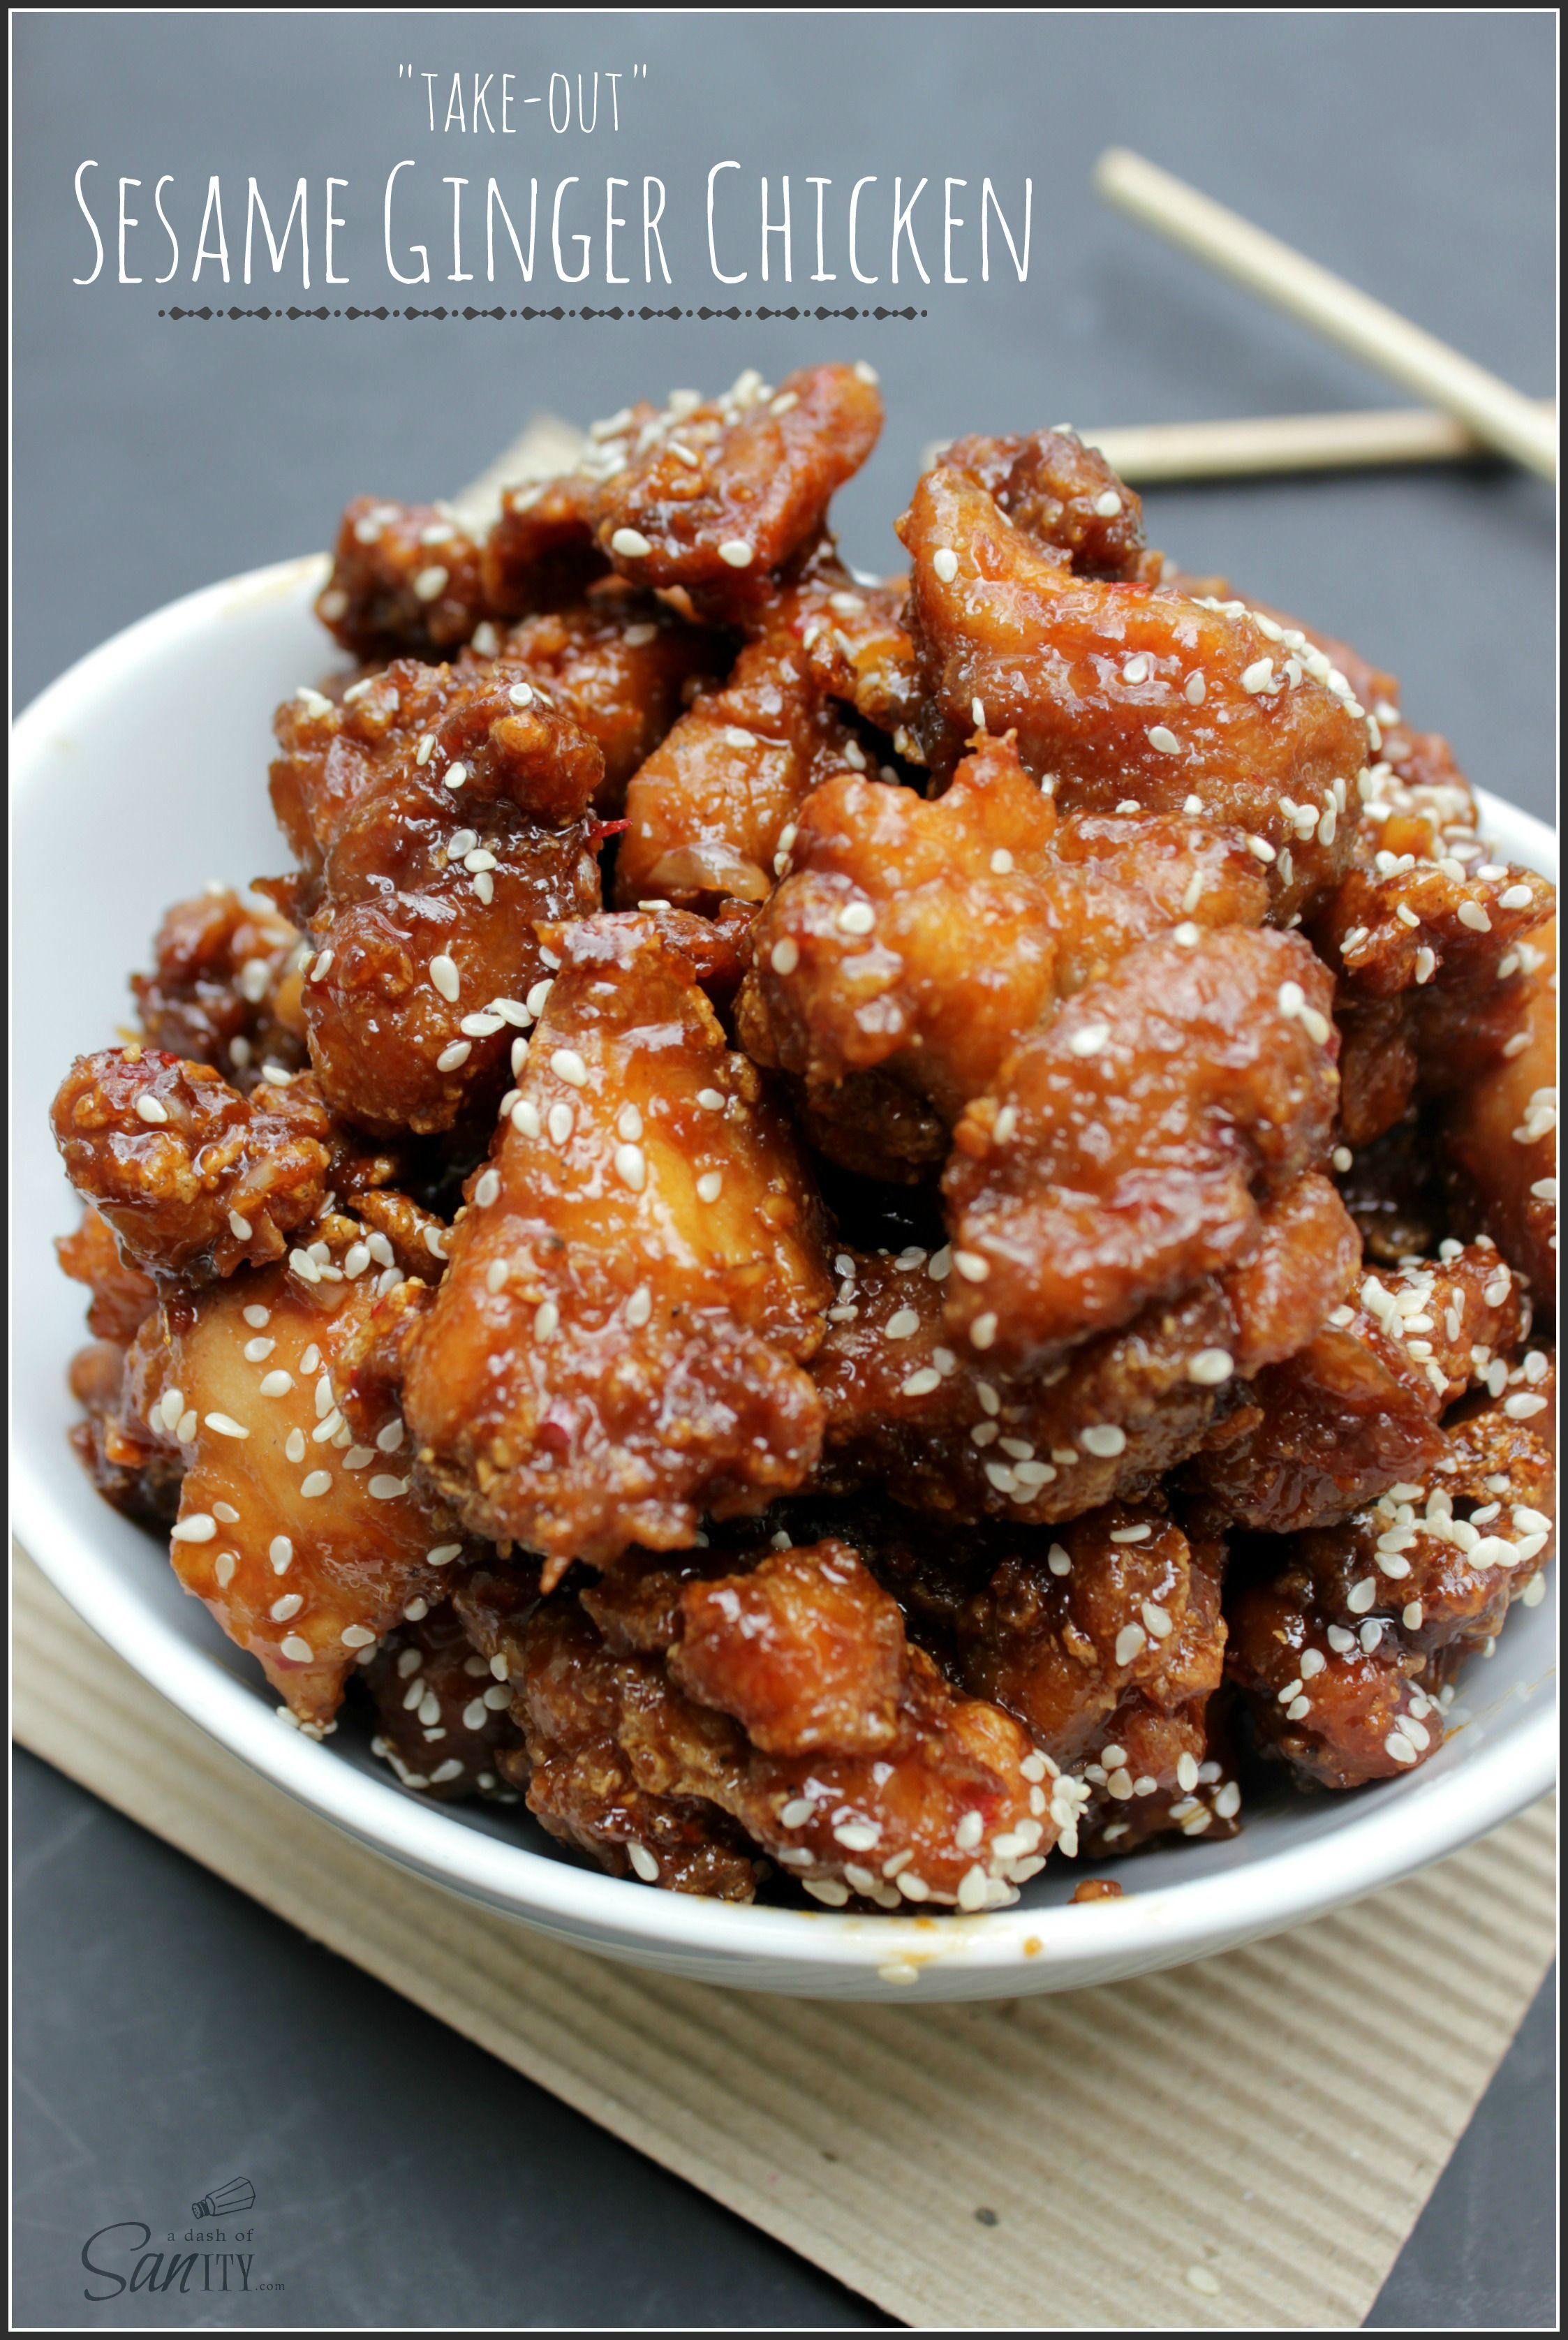 Take out sesame ginger chicken recipes pinterest comida china take out sesame ginger chicken forumfinder Images